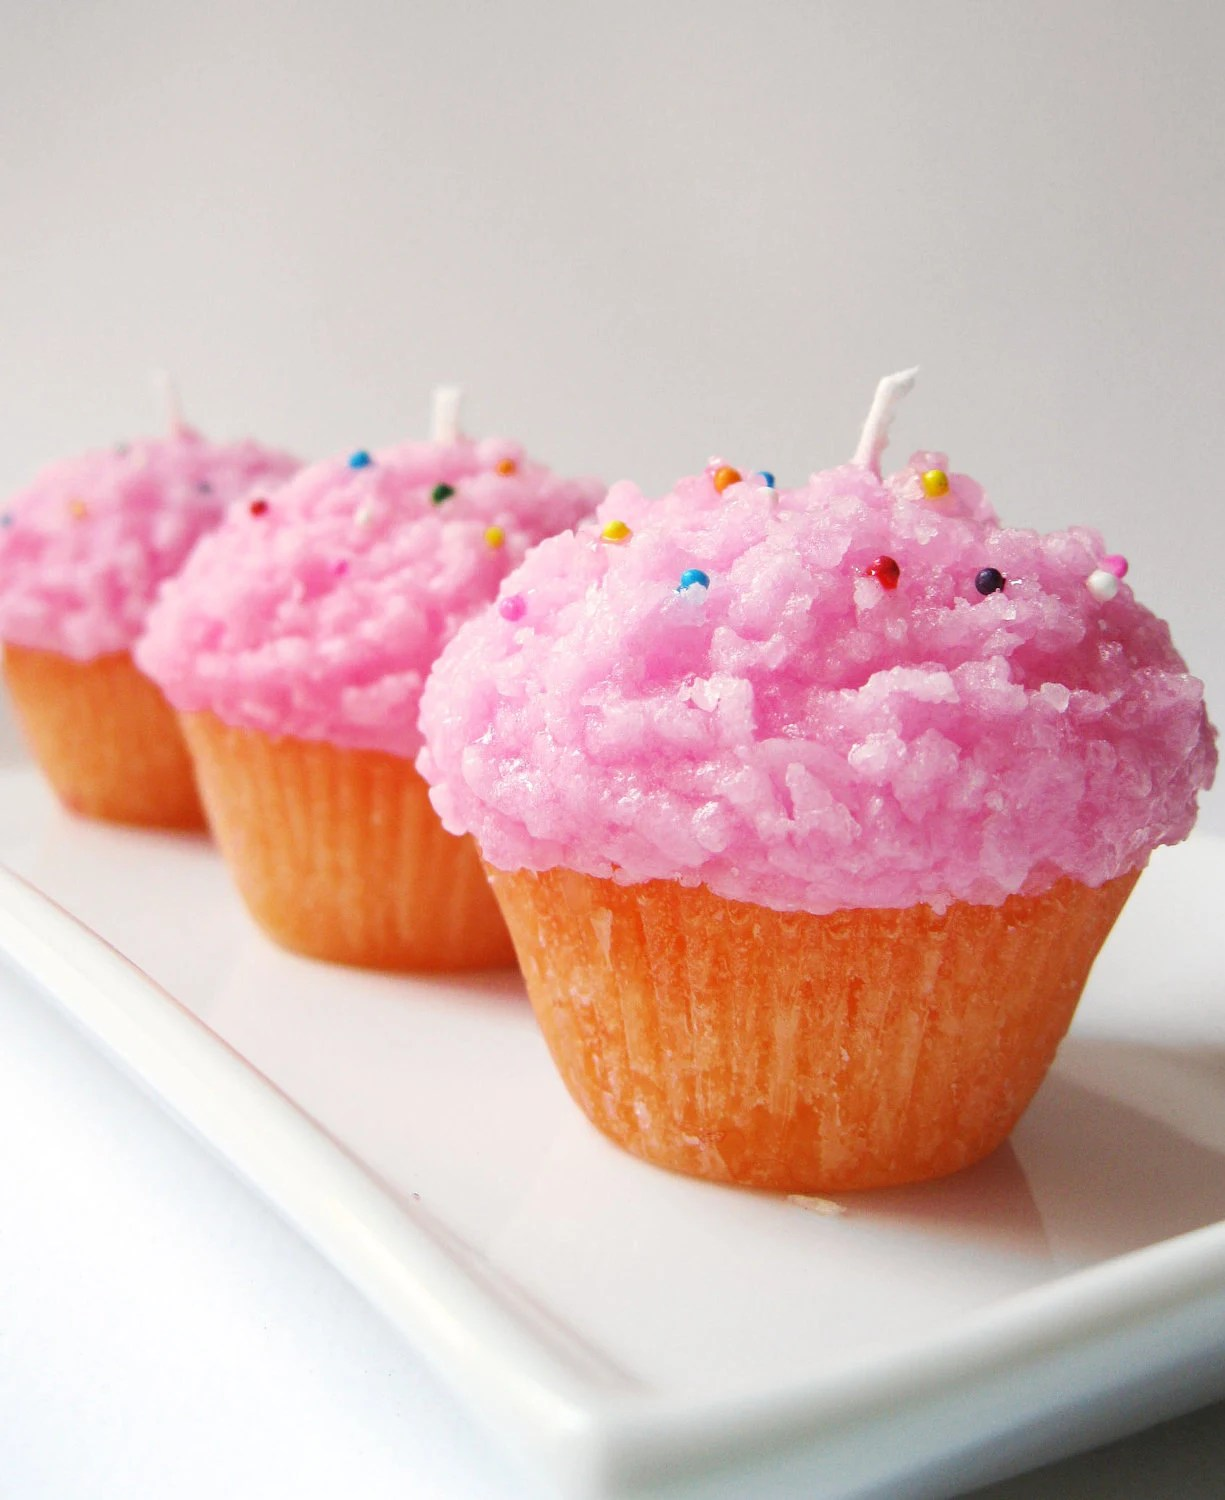 candle, cupcake, wax, pink, cupcakes, candles, etsy